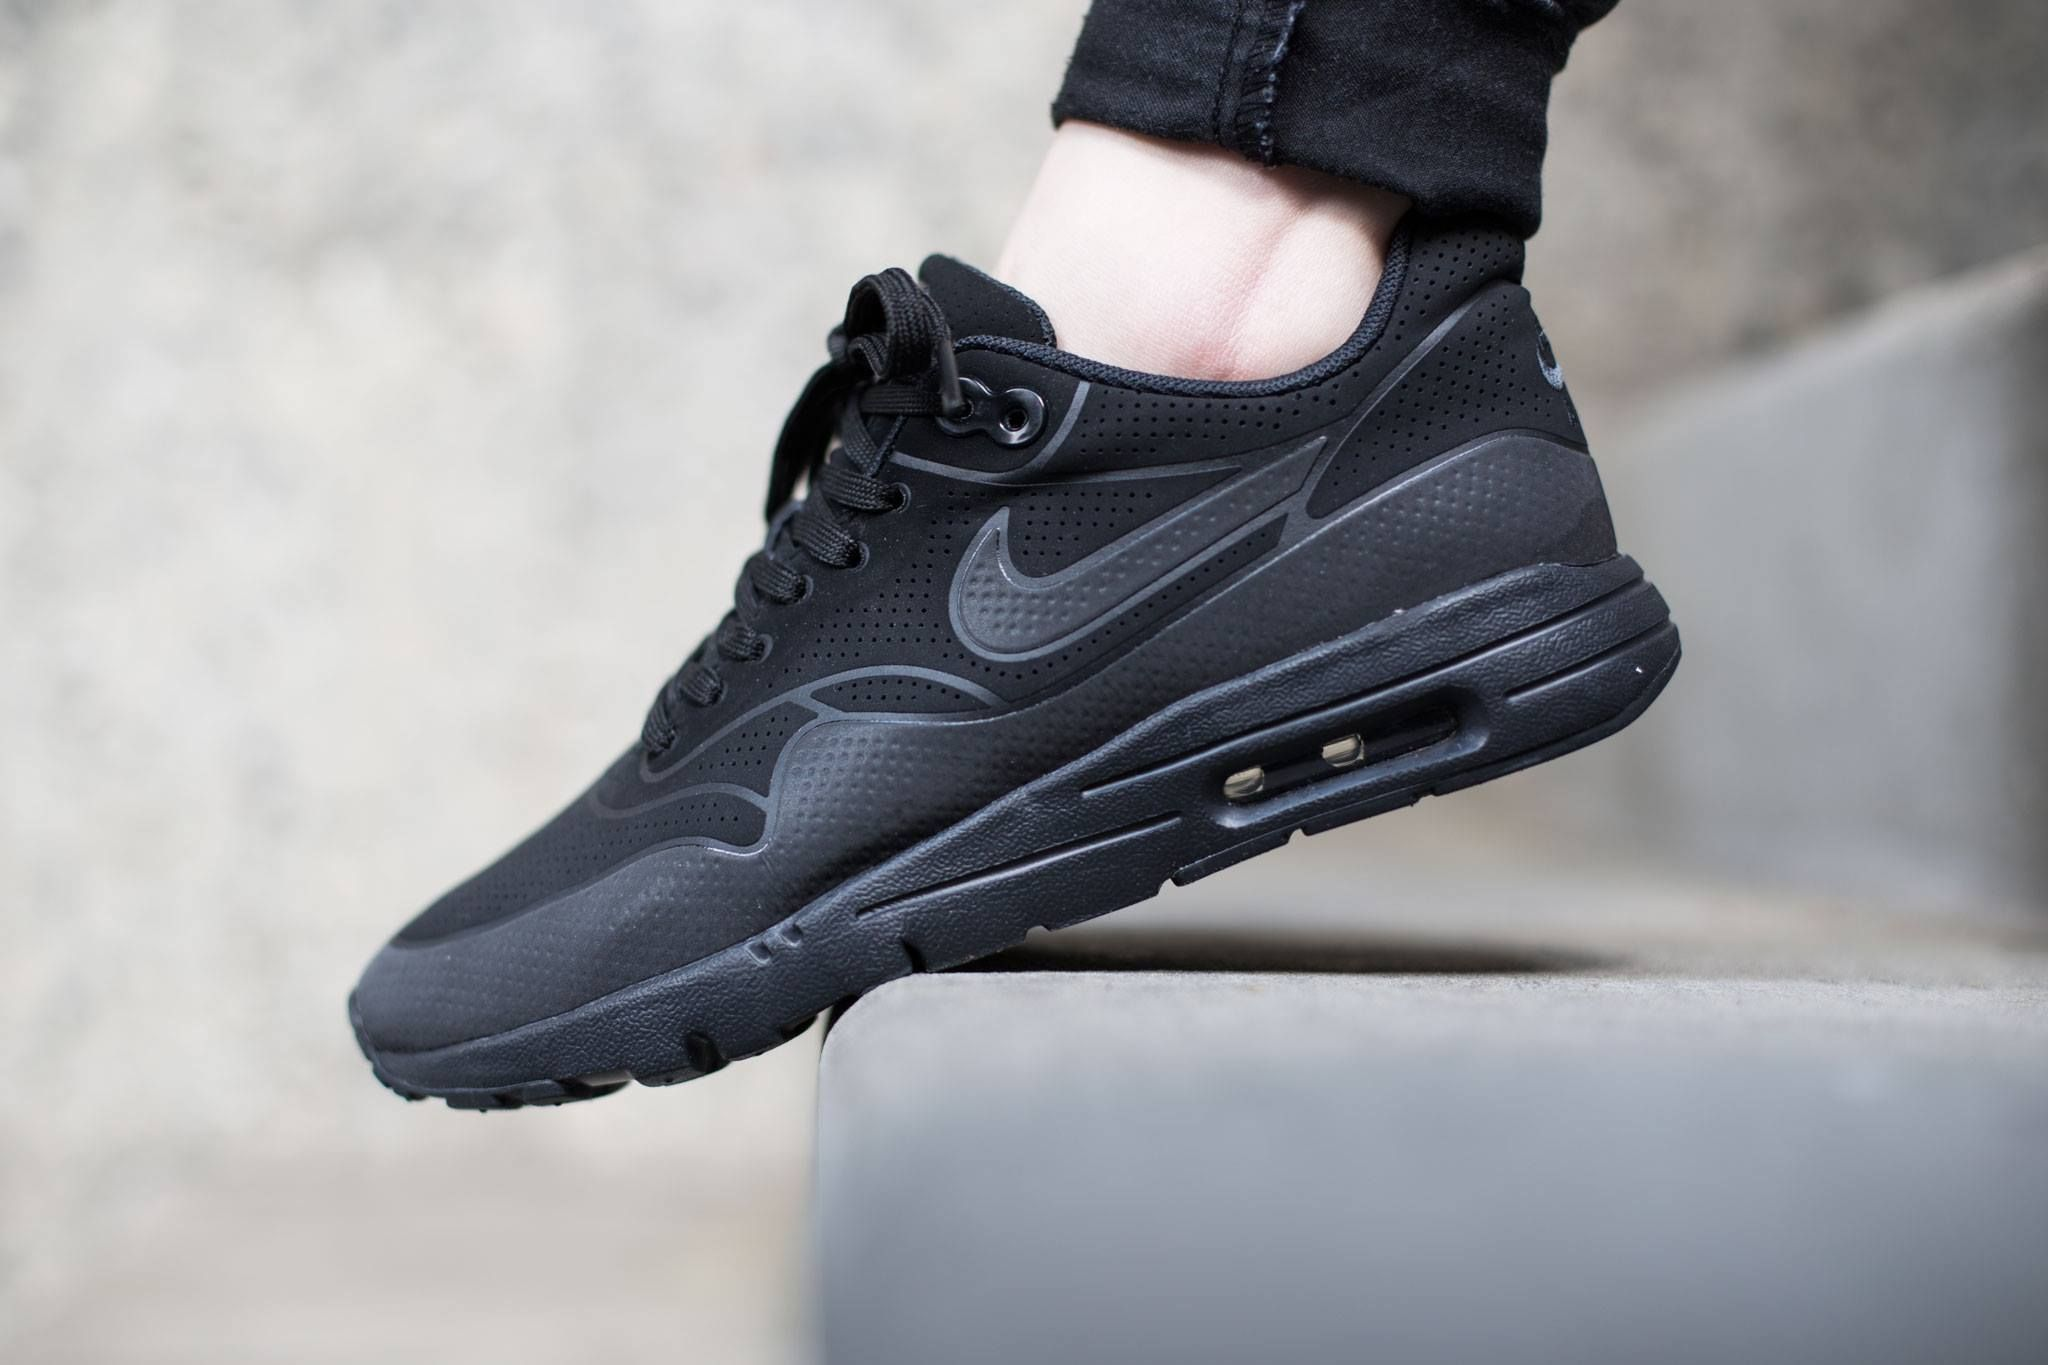 Nike WMNS Air Max 1 Ultra Moire Black/Black-Anthracite: The women's Air Max  1 Ultra Moire is rendered in a minimalist colorway.